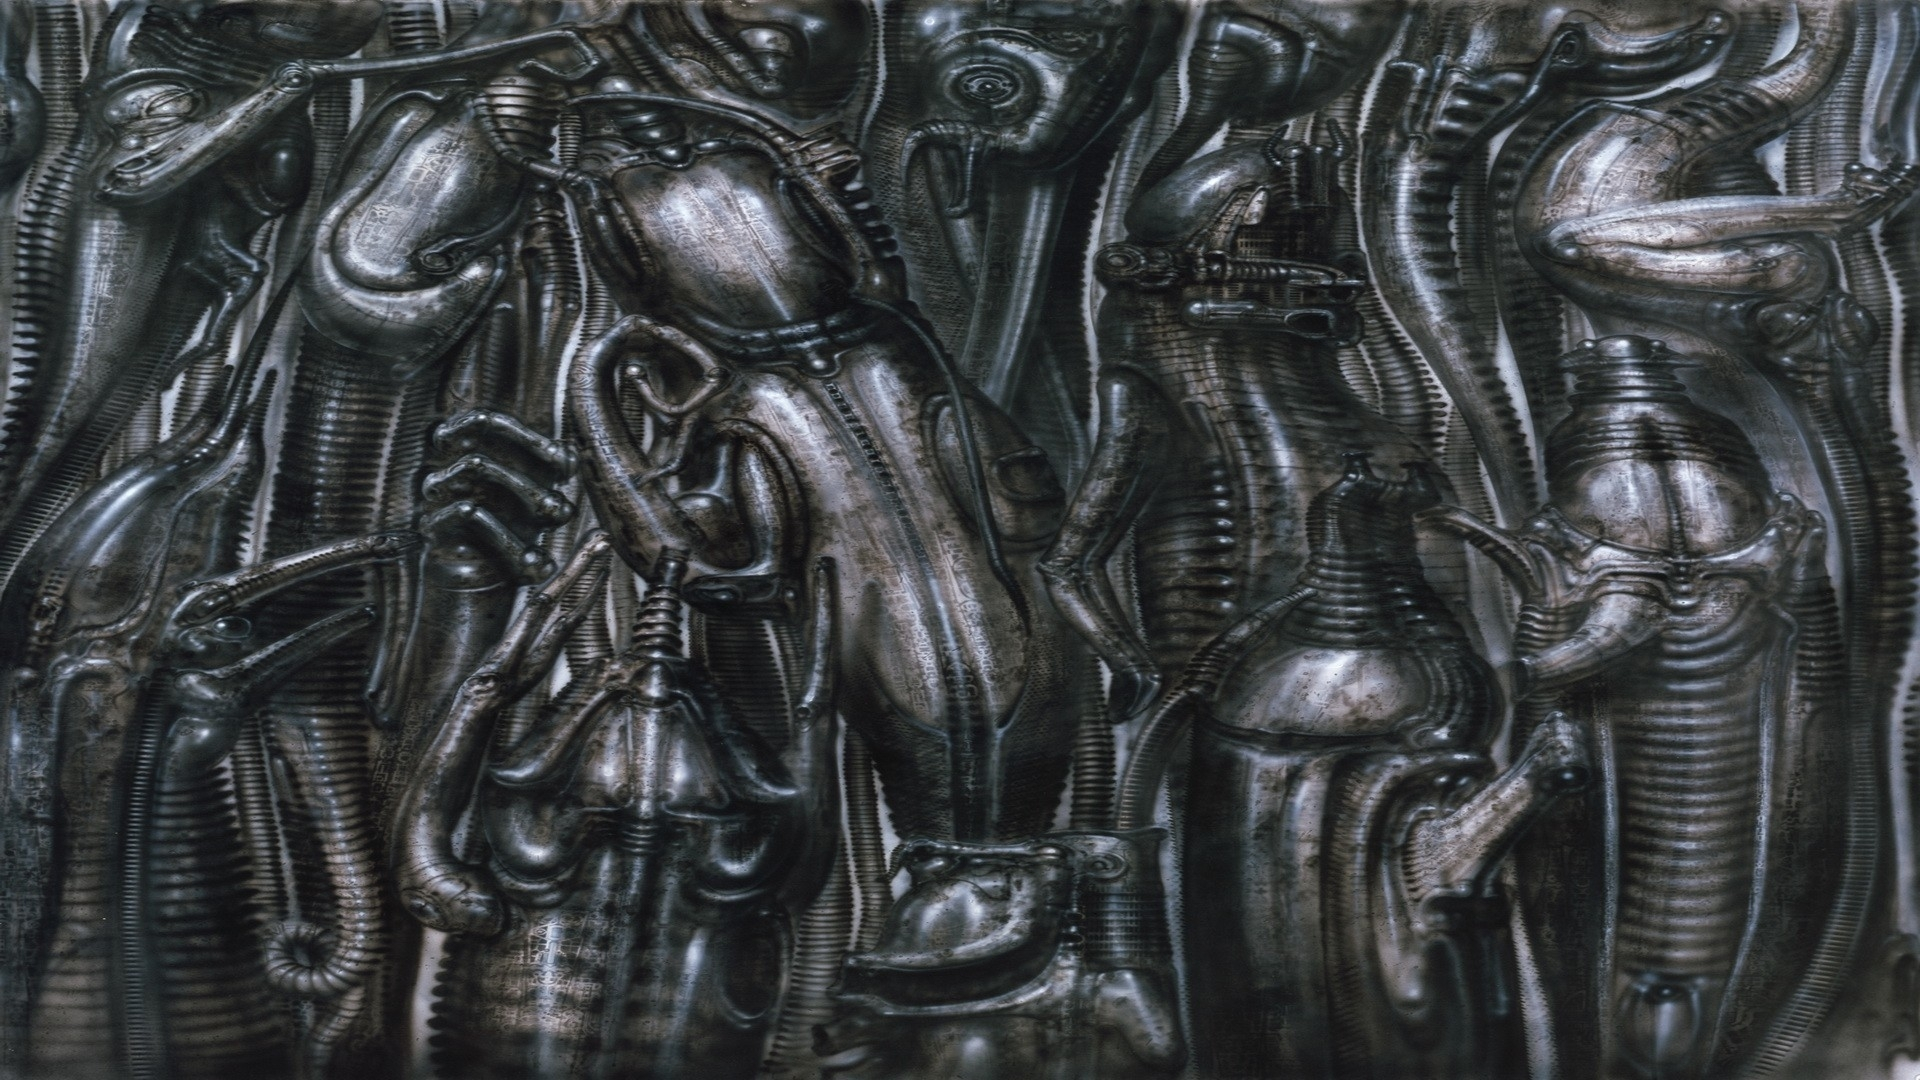 10 Best Hr Giger Wallpaper 1920X1080 FULL HD 1080p For PC Desktop